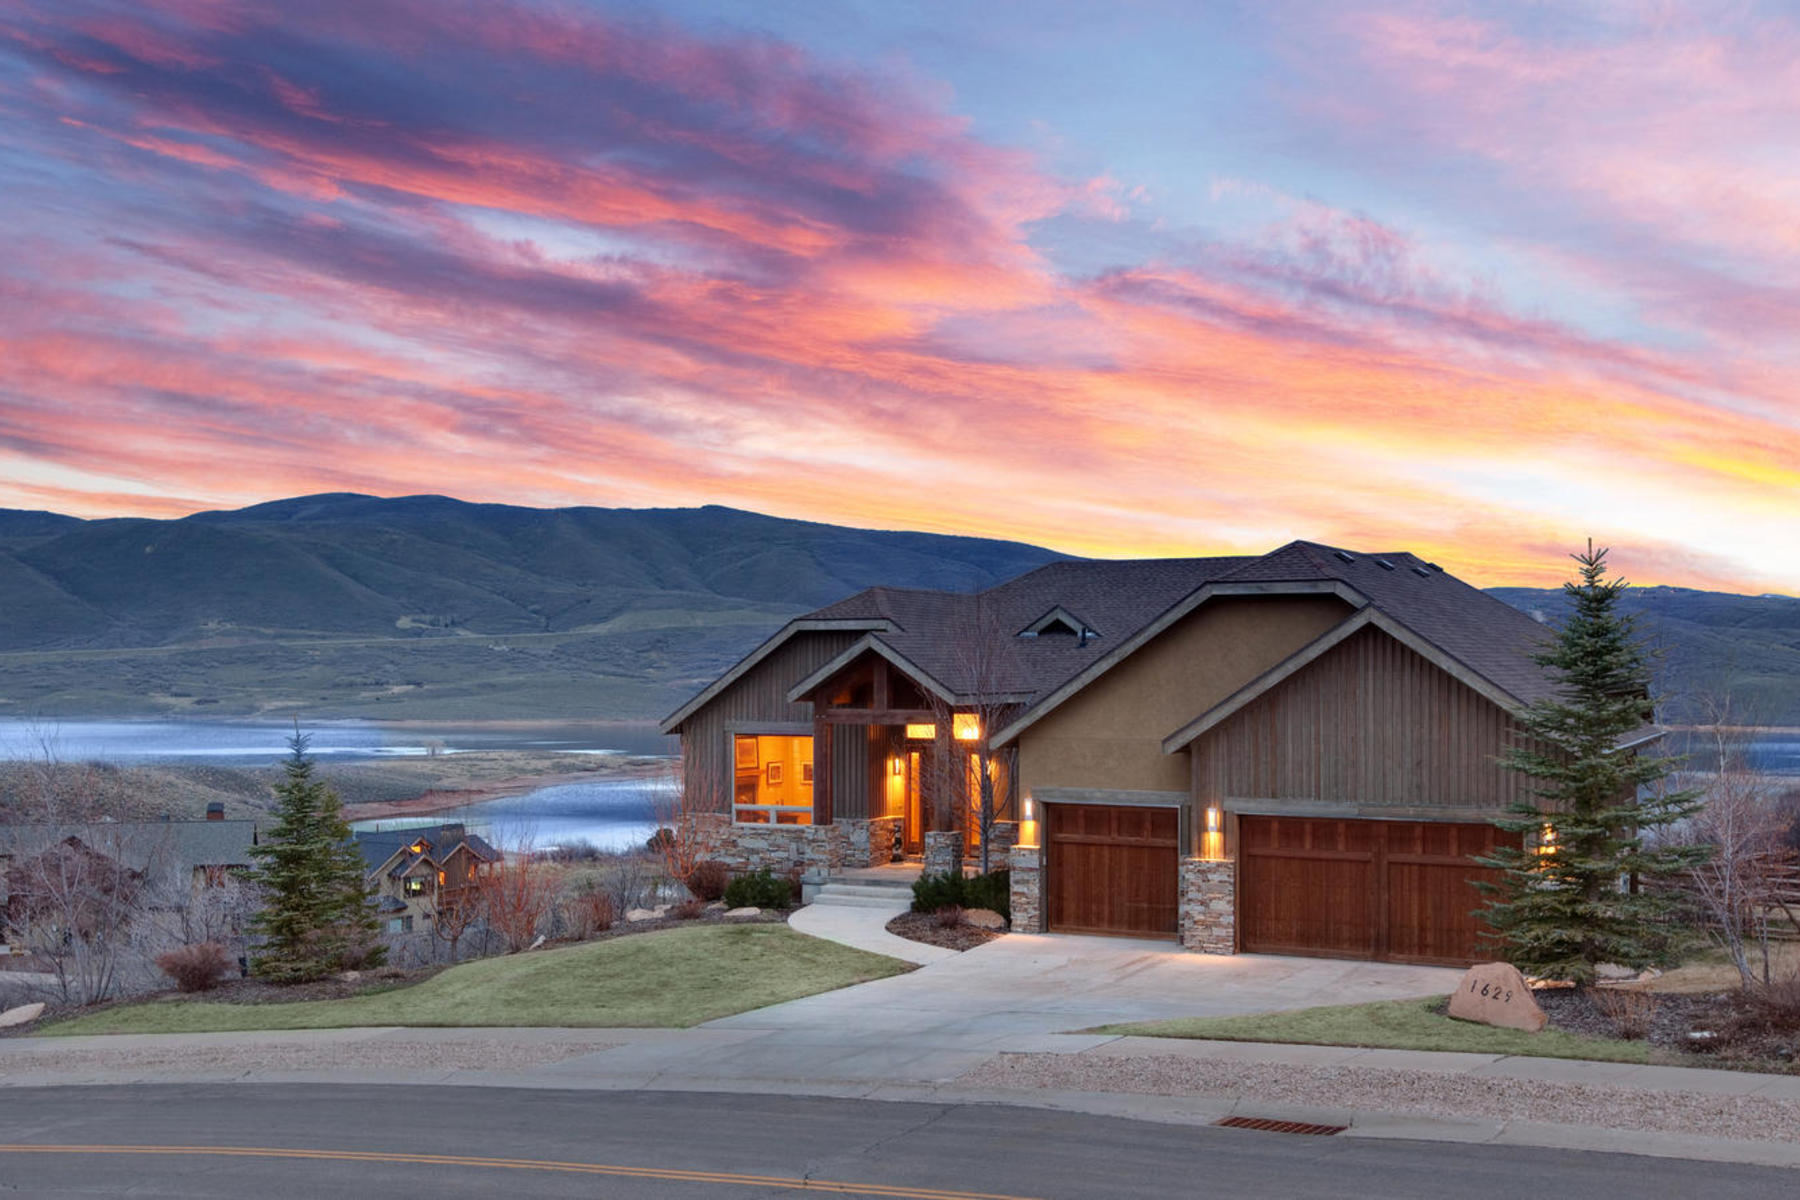 Single Family Home for Sale at Extraordinary Jordanelle Views! 1629 Alpine Ave Heber City, Utah 84032 United States